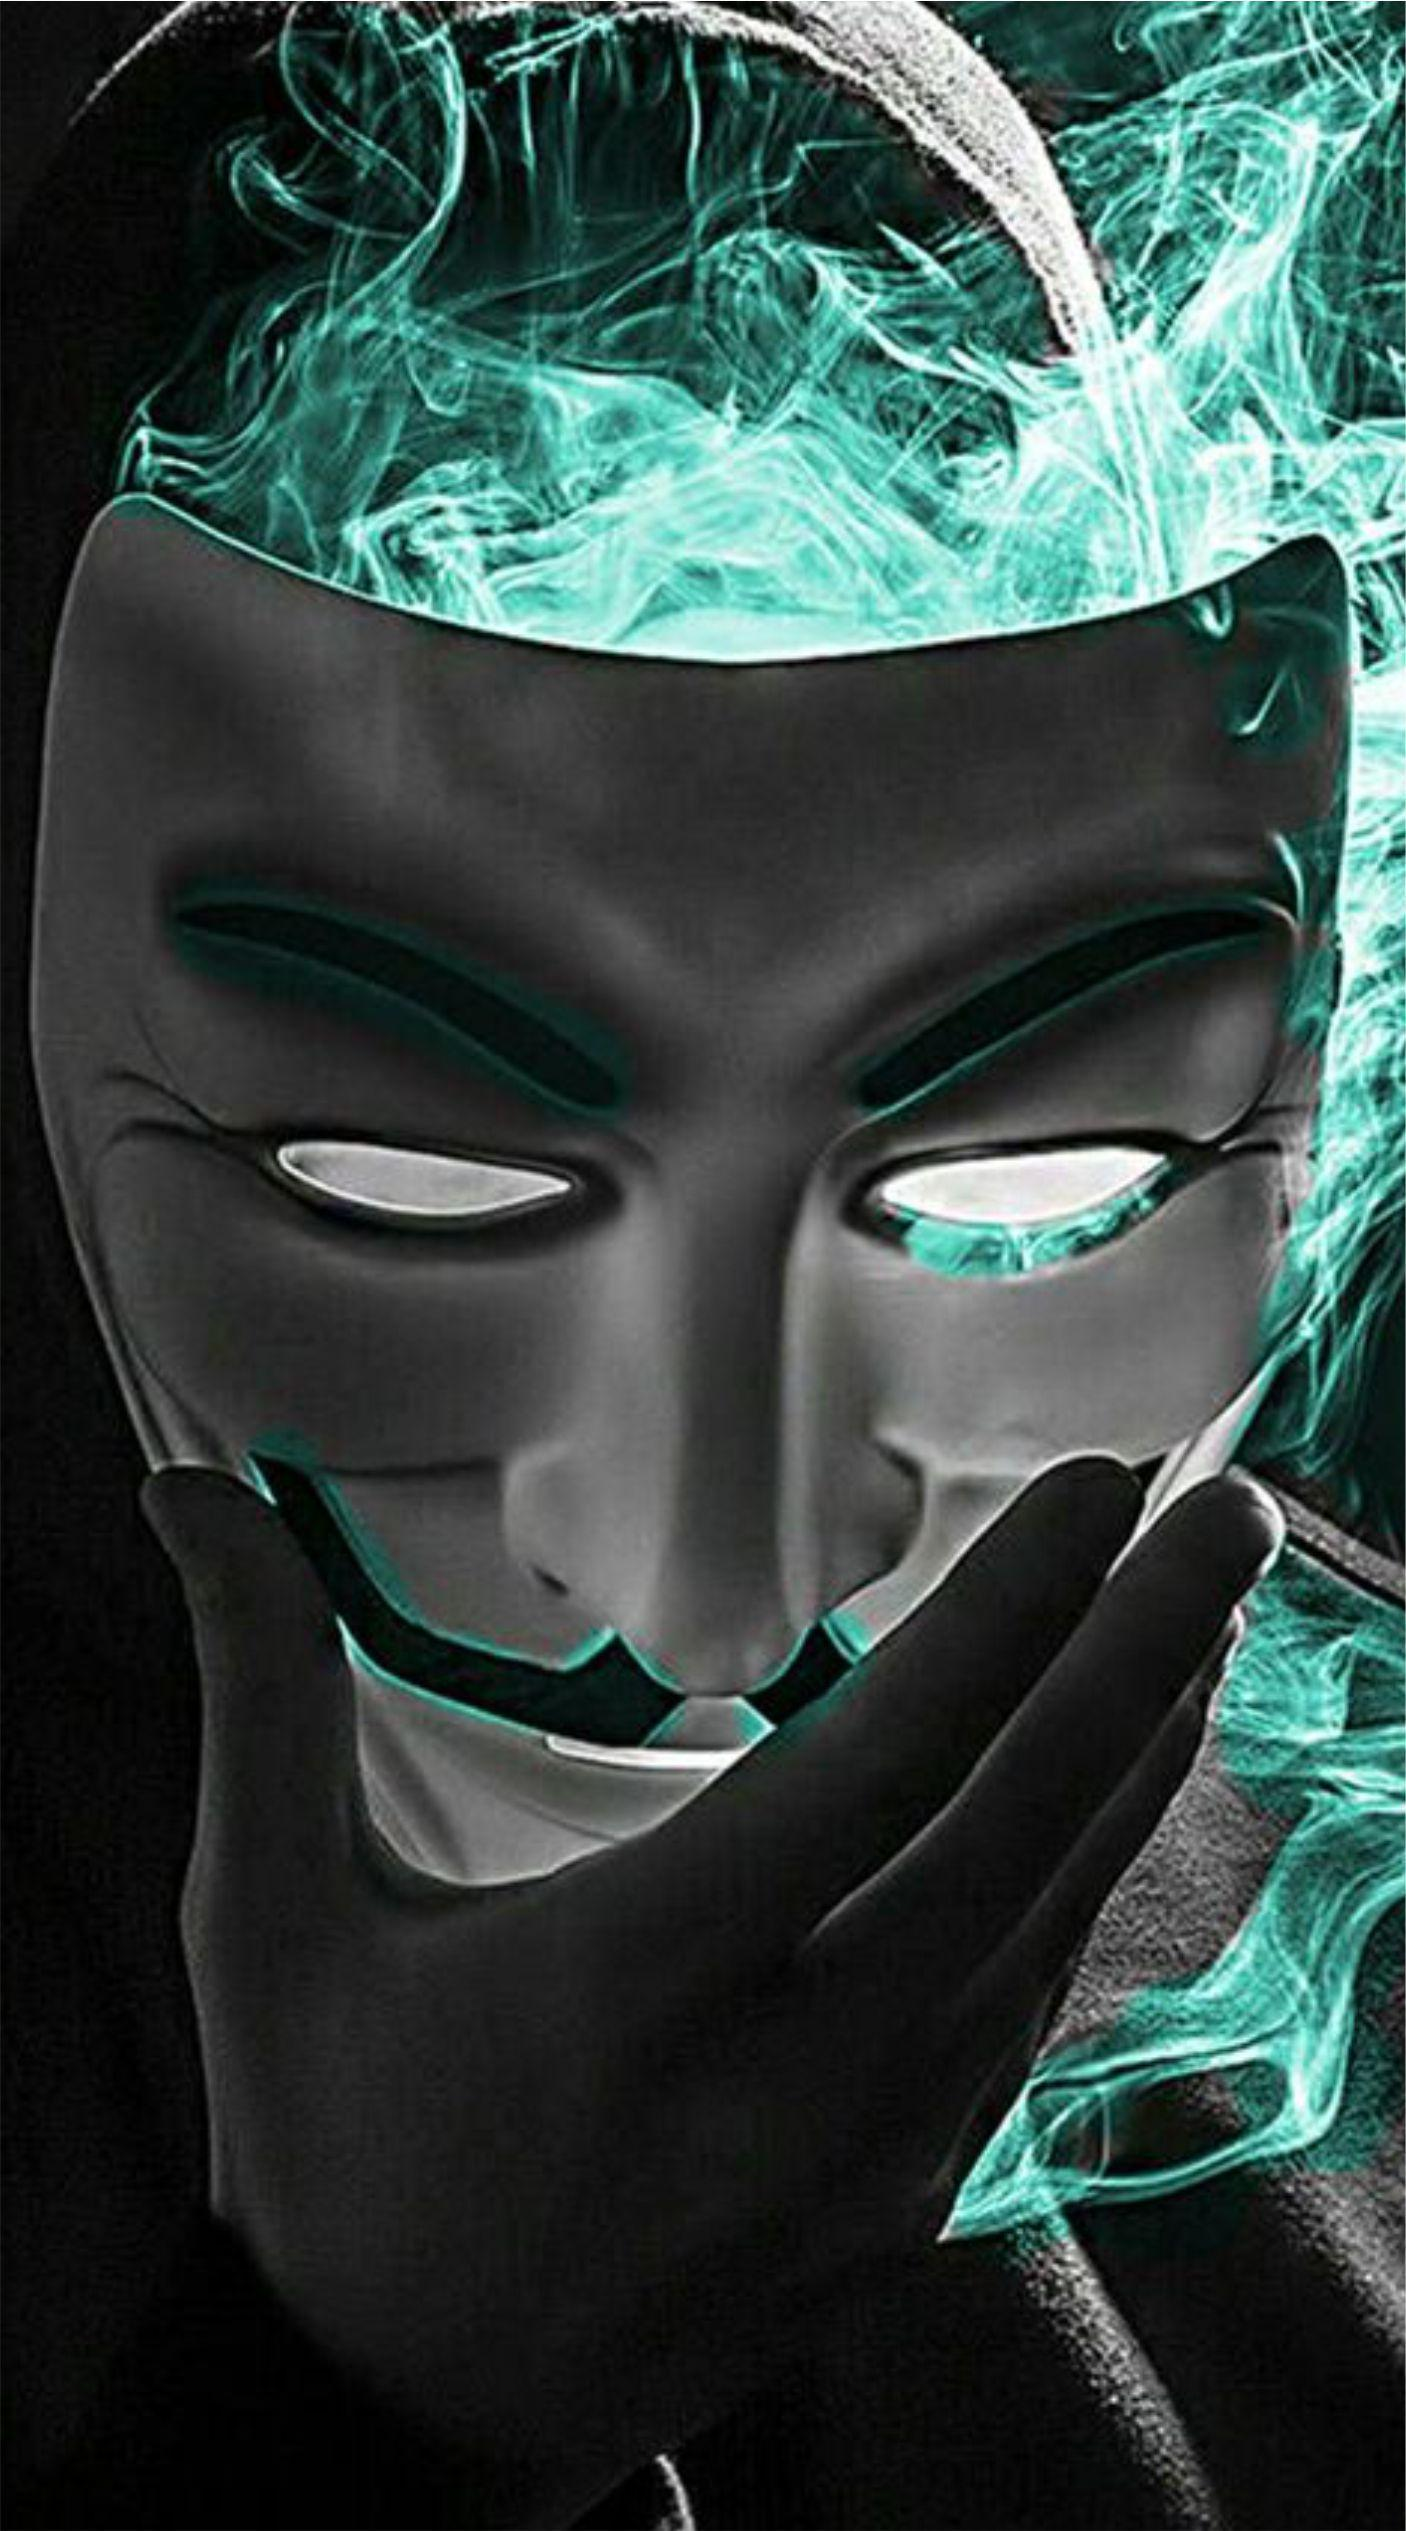 Anonymous Wallpaper for Android - APK Download